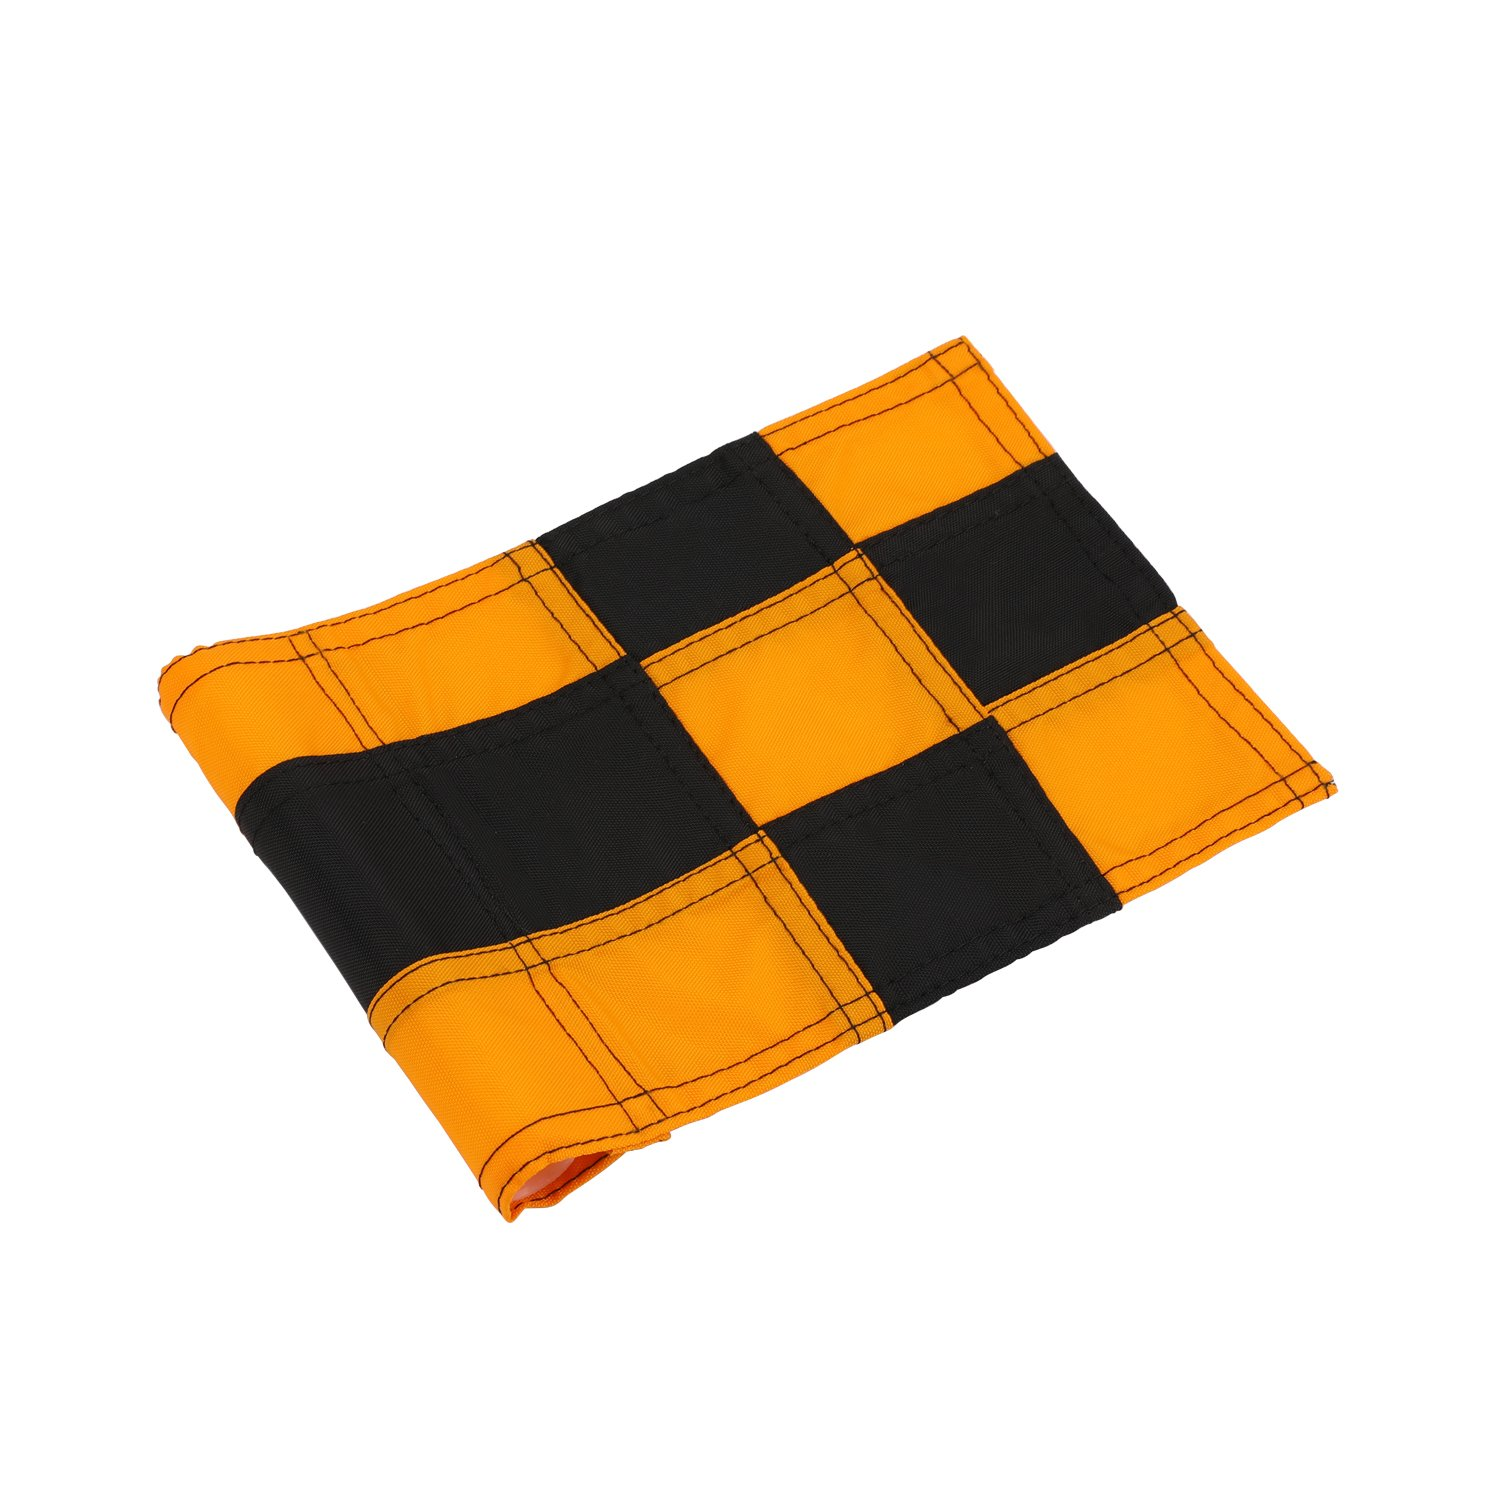 KONDAY Golf Flag,Practice Green Golf Flags, Solid Nylon and Checkered Traning Golf Putting Green Flags, Indoor Outdoor Backyard Garden Portable Golf Target flags